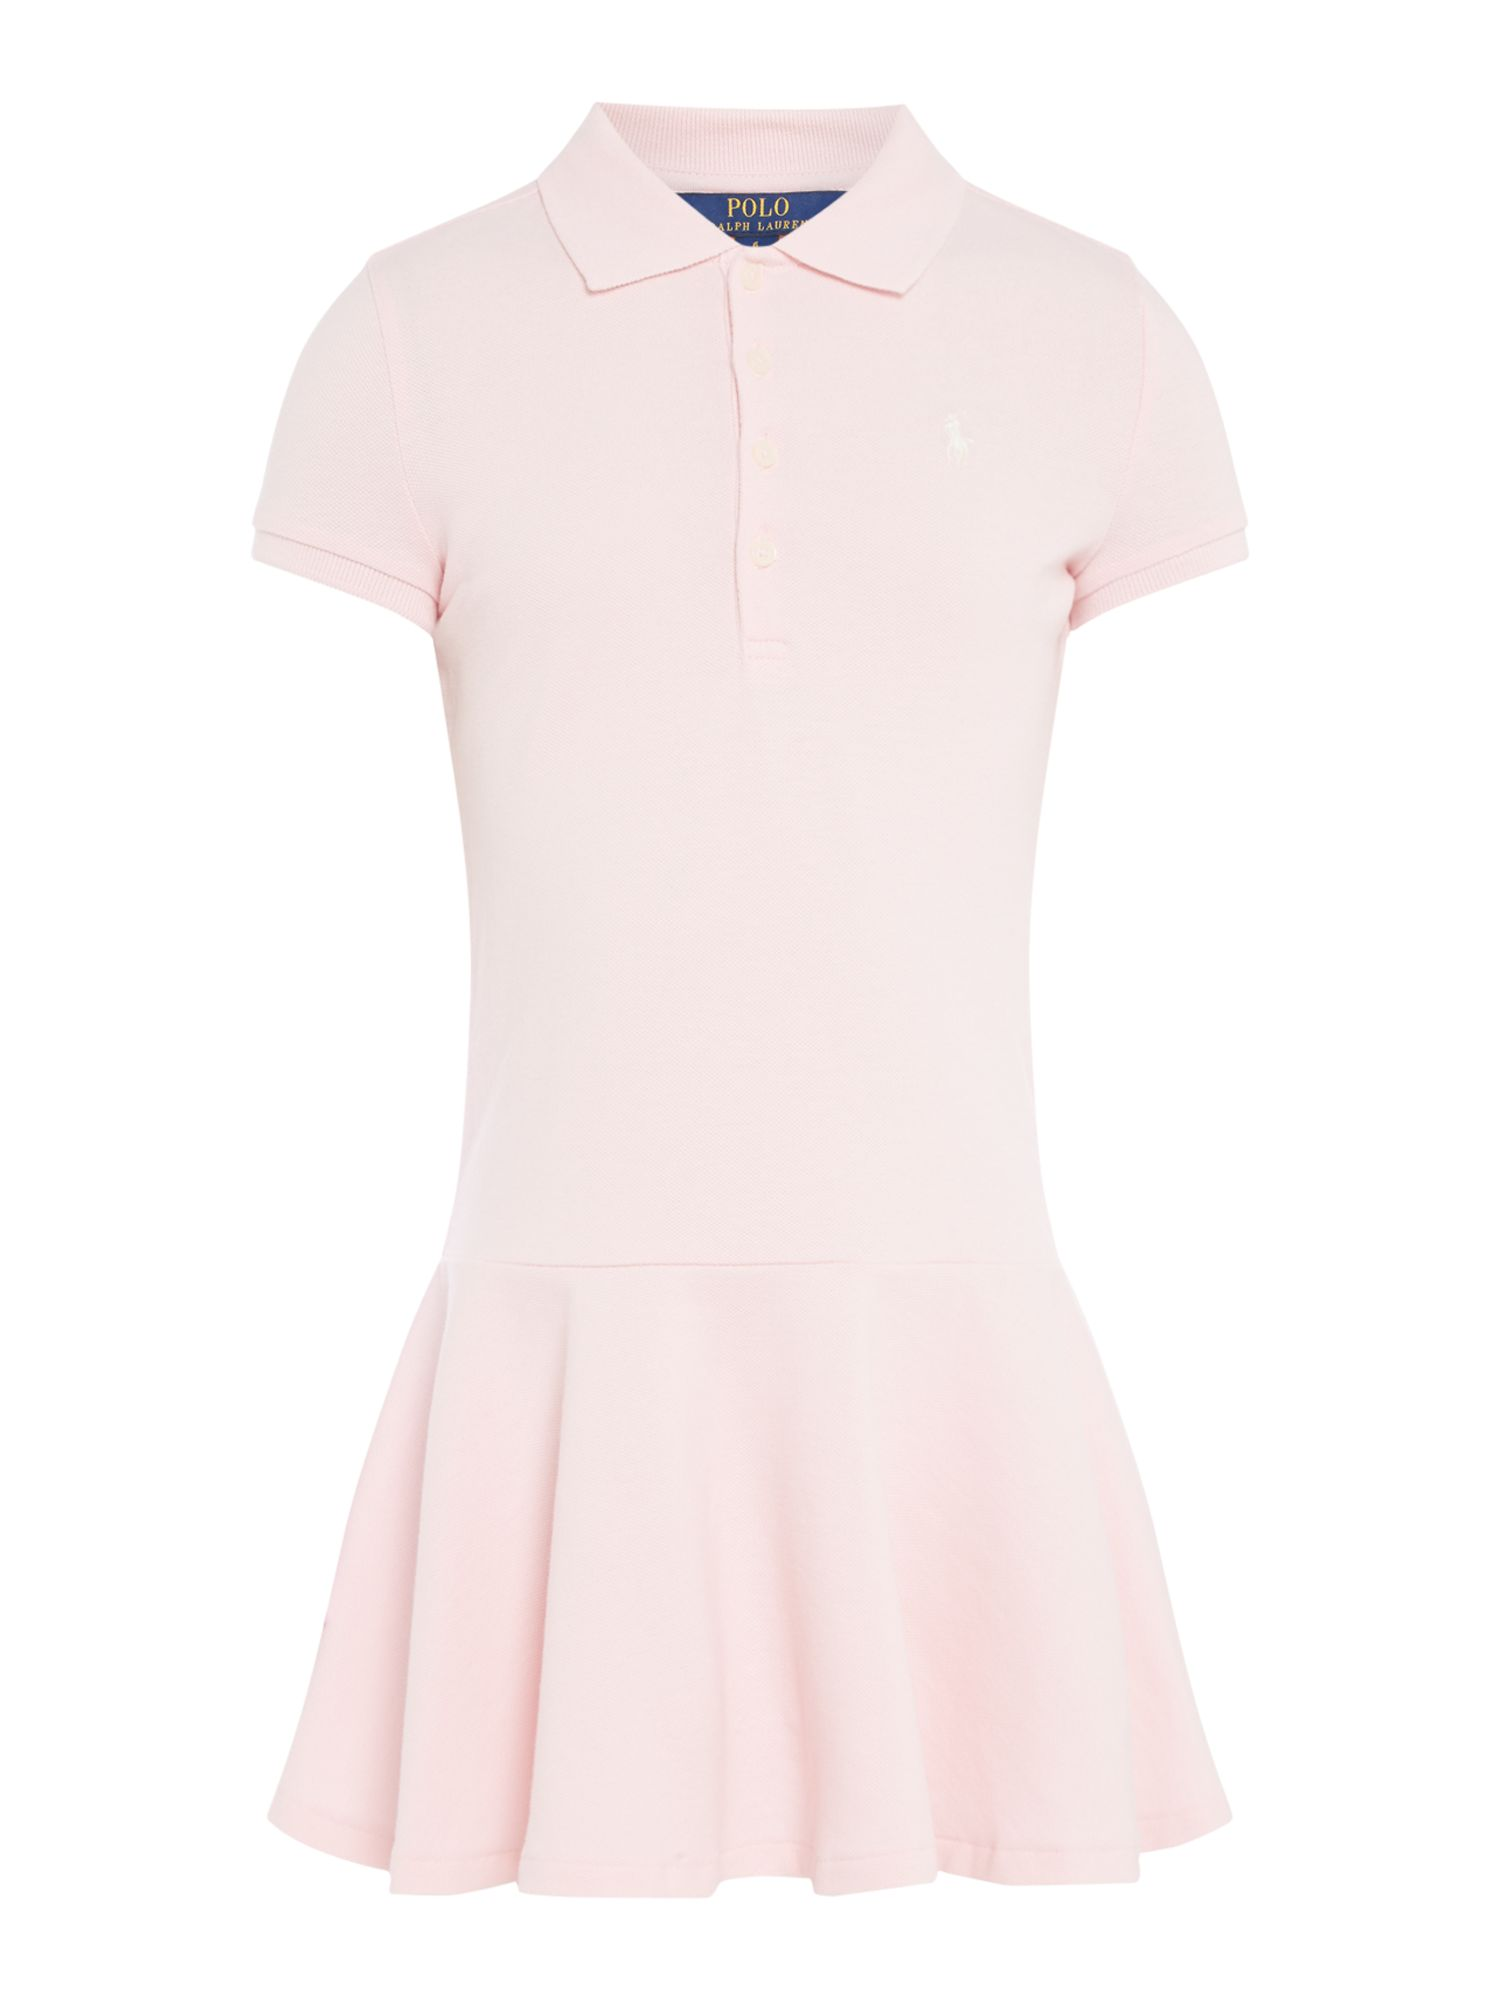 Polo Ralph Lauren Girls Ralph Lauren Polo Dress with Small Logo ...